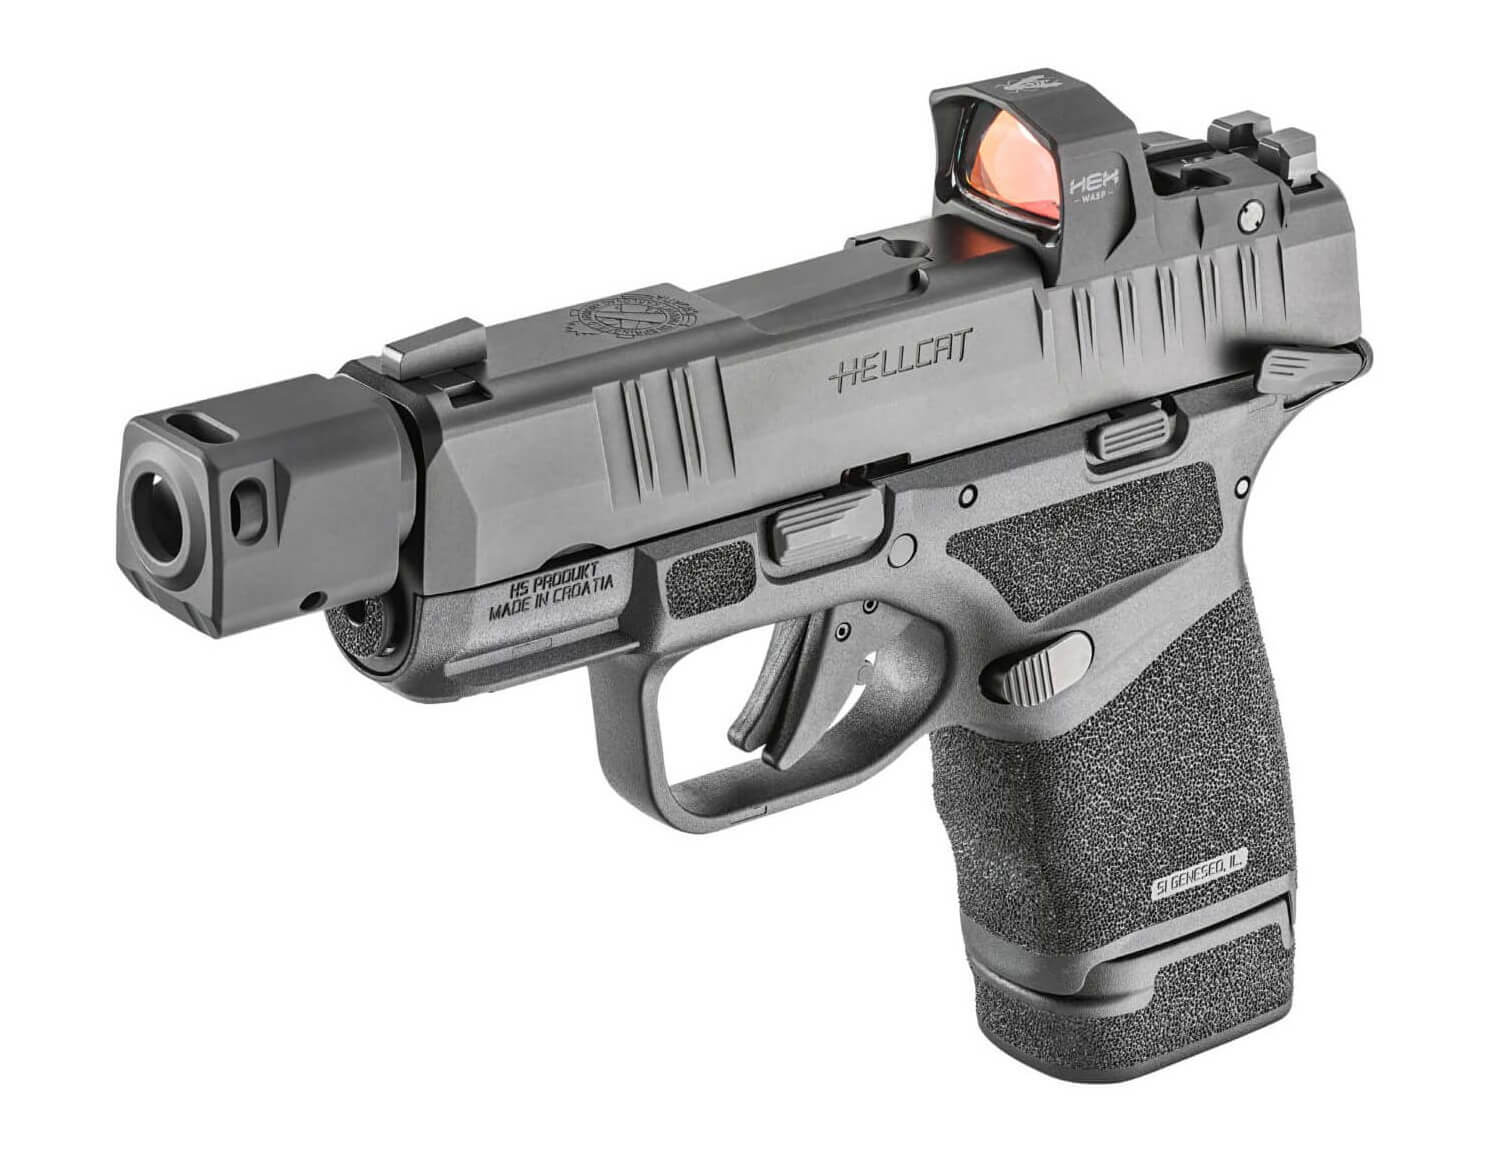 Hellcat pistol with manual safety